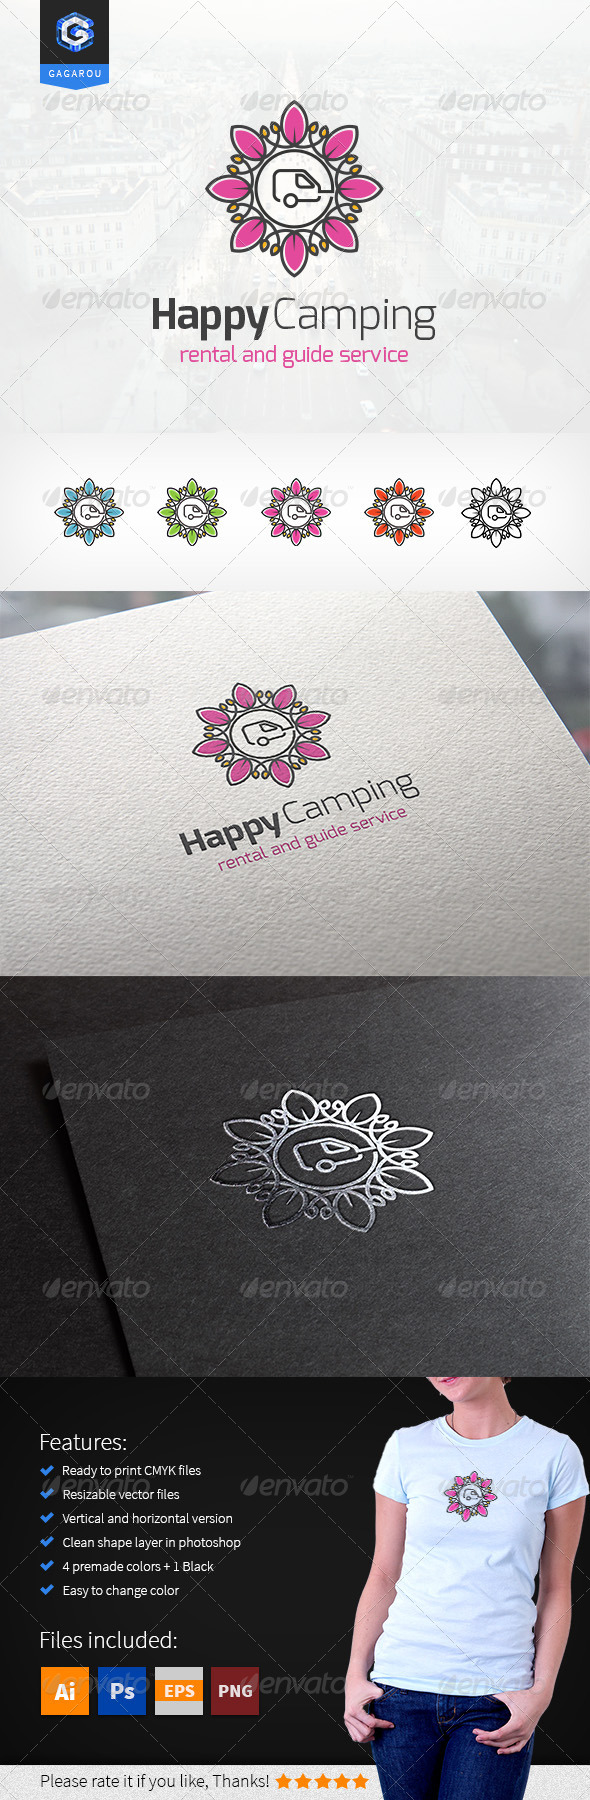 GraphicRiver Happy Camping logo 8522871